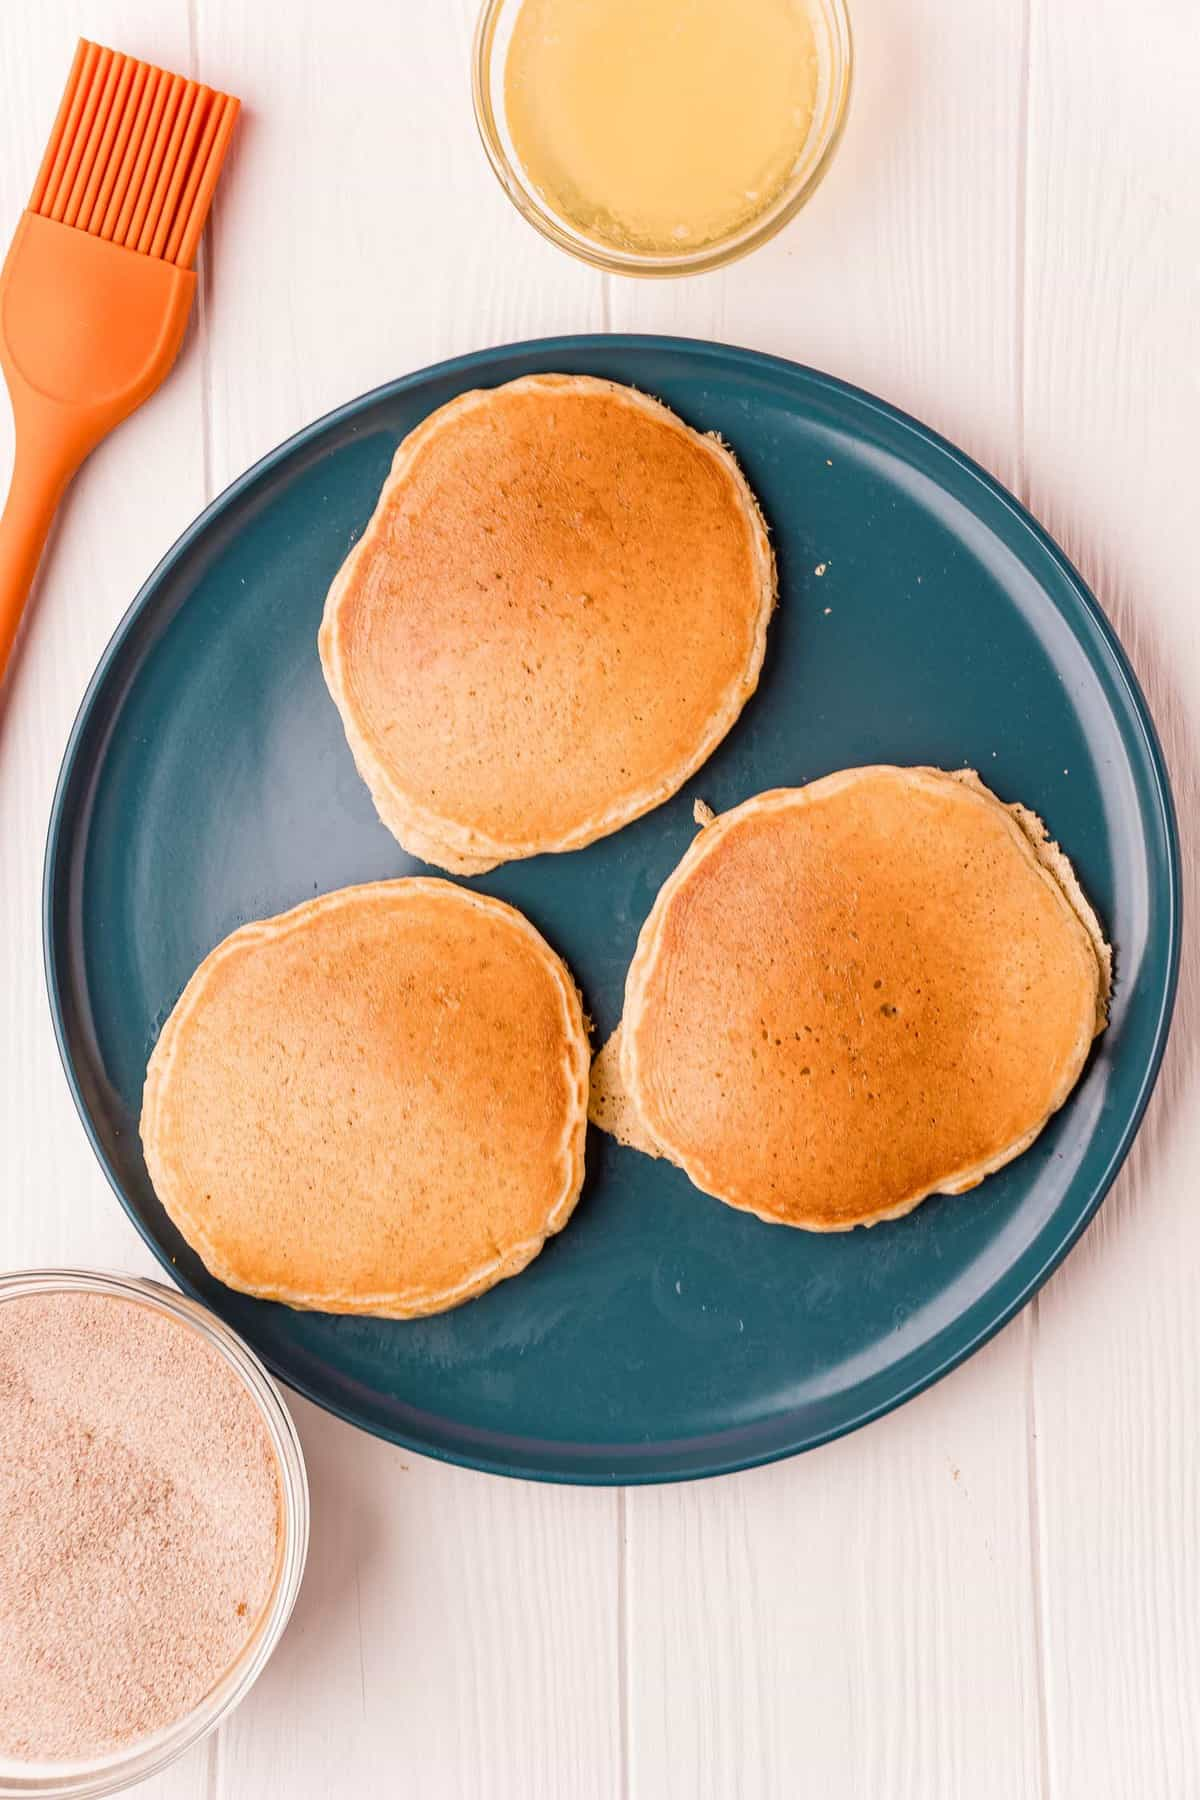 Cooked pancakes on a plate.